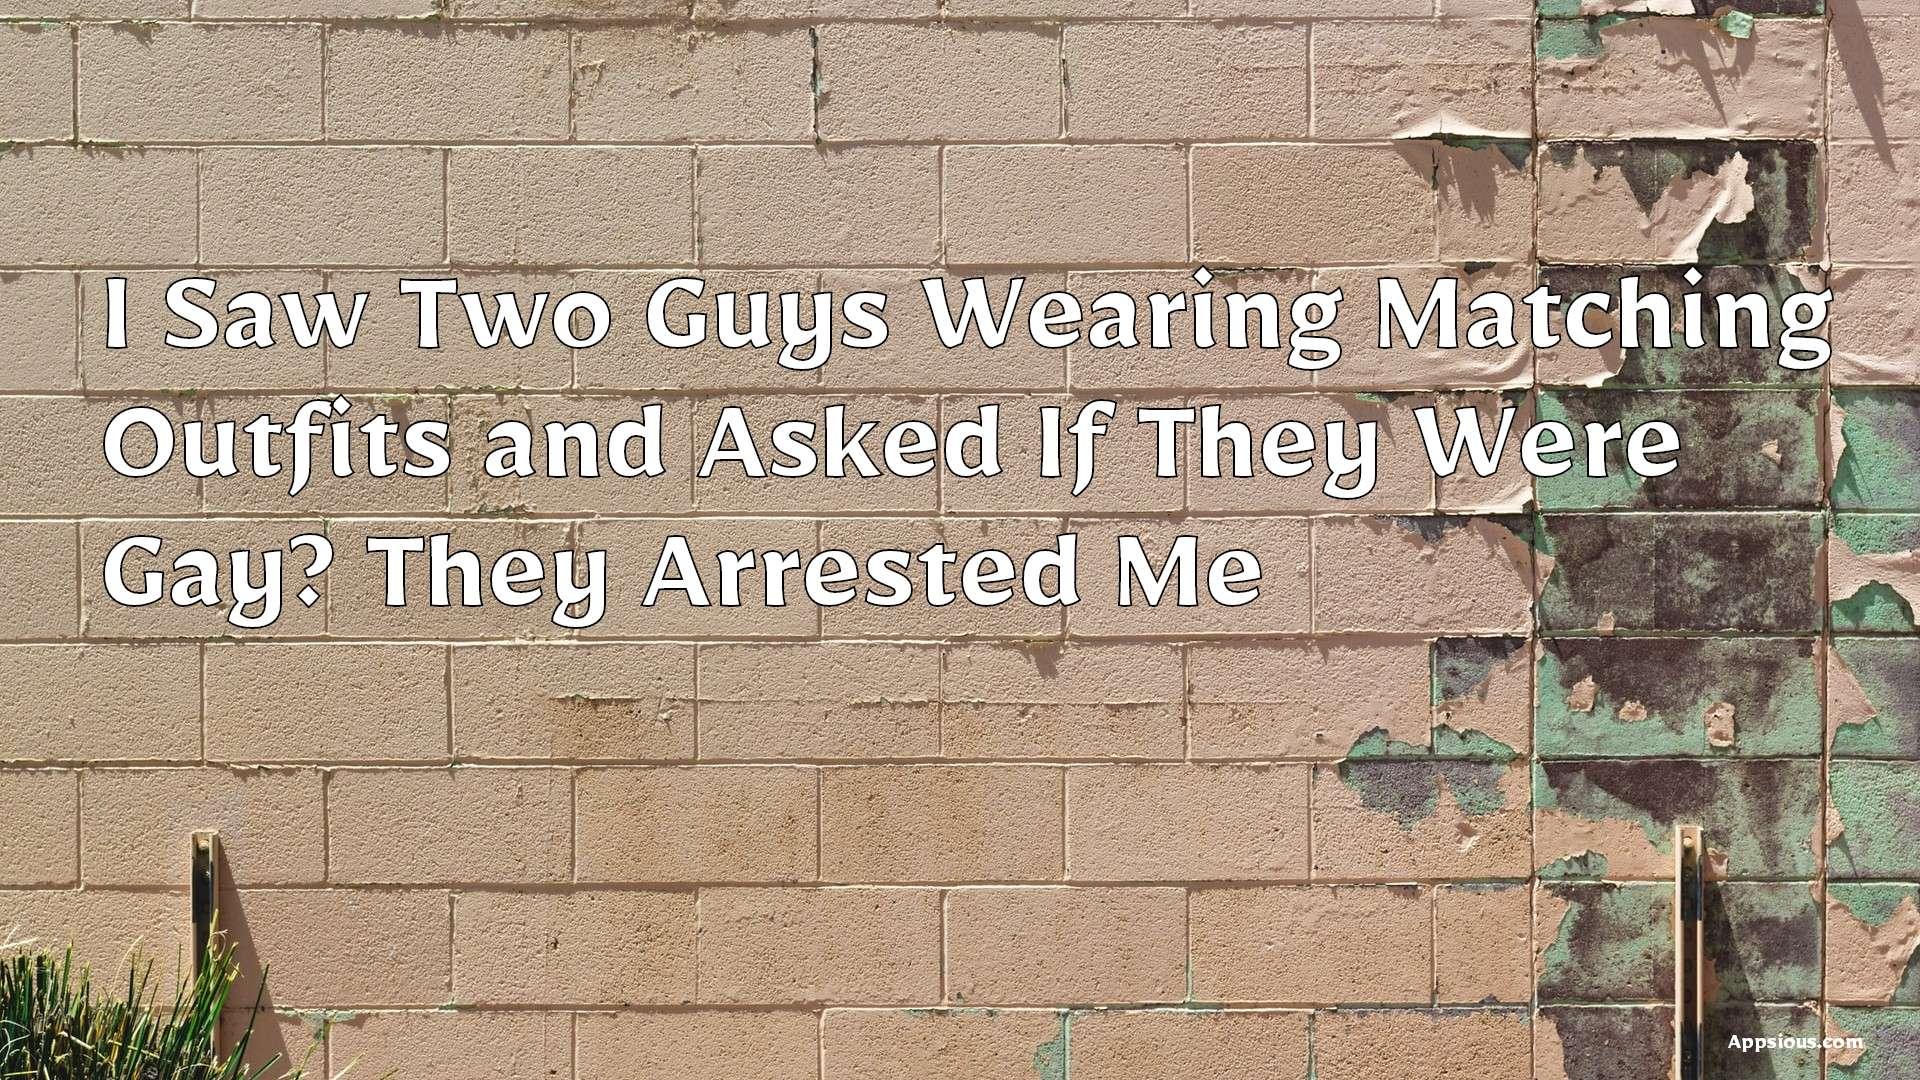 I Saw Two Guys Wearing Matching Outfits and Asked If They Were Gay? They Arrested Me